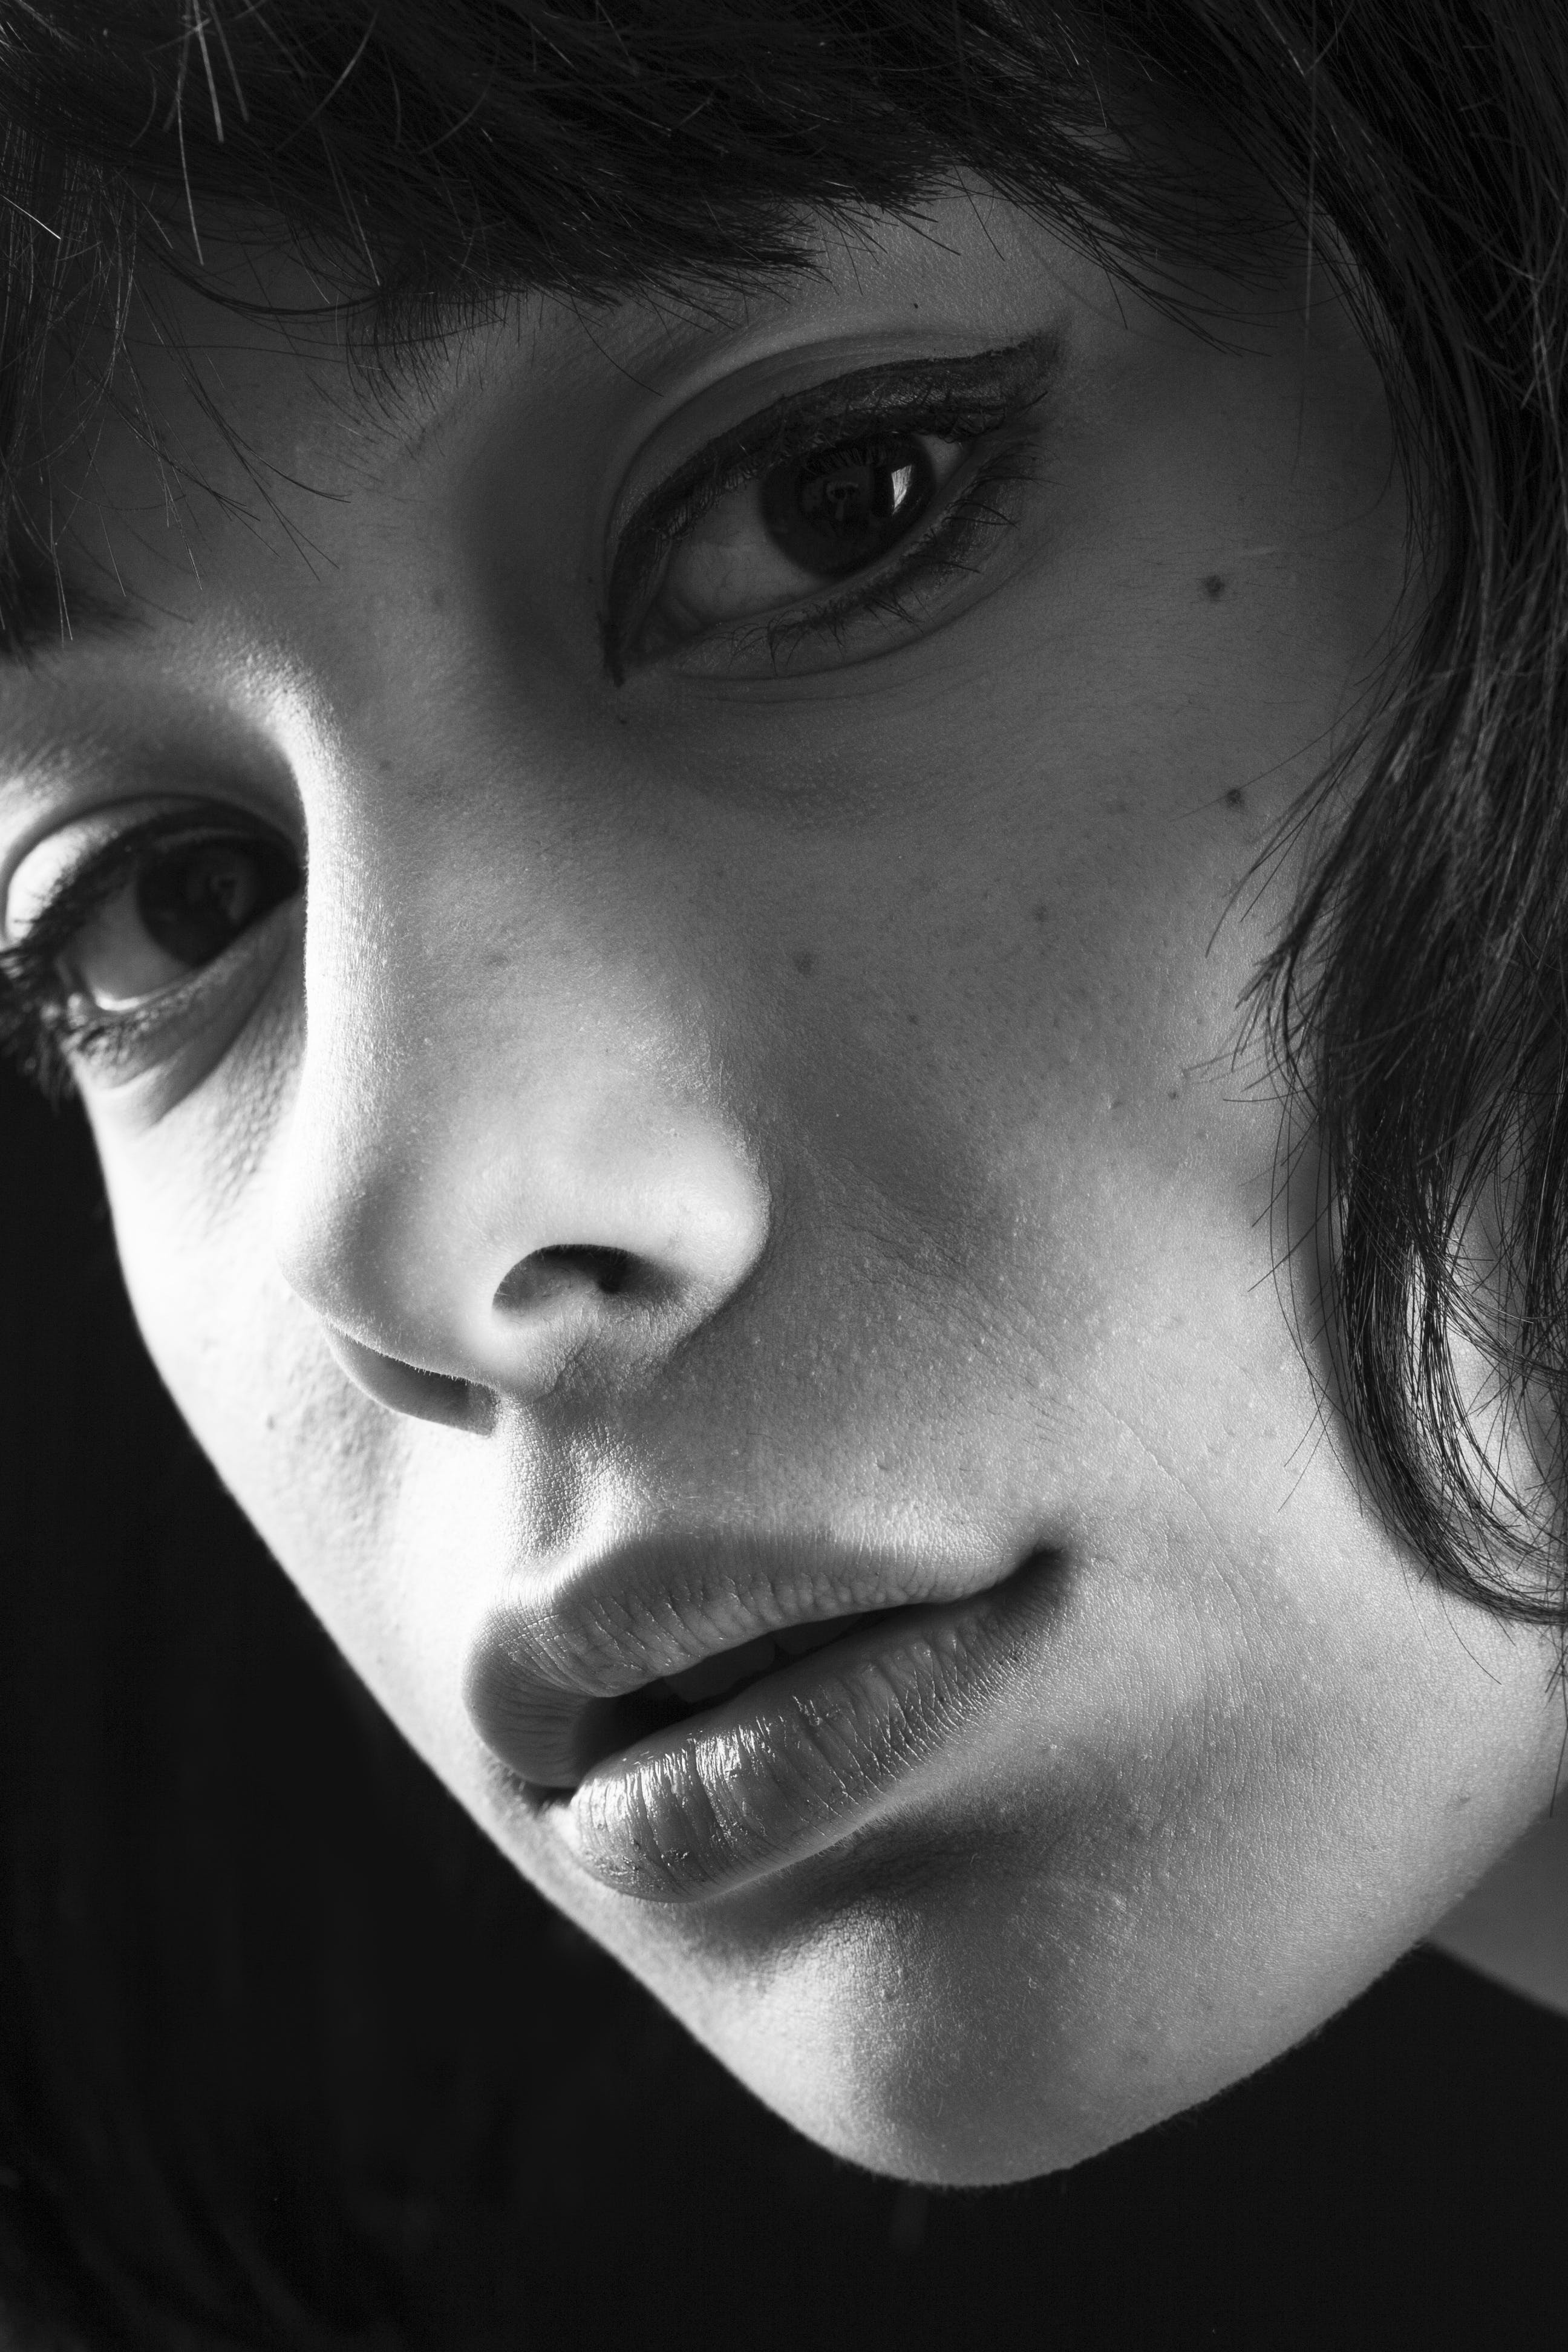 black-and-white, eyes, face